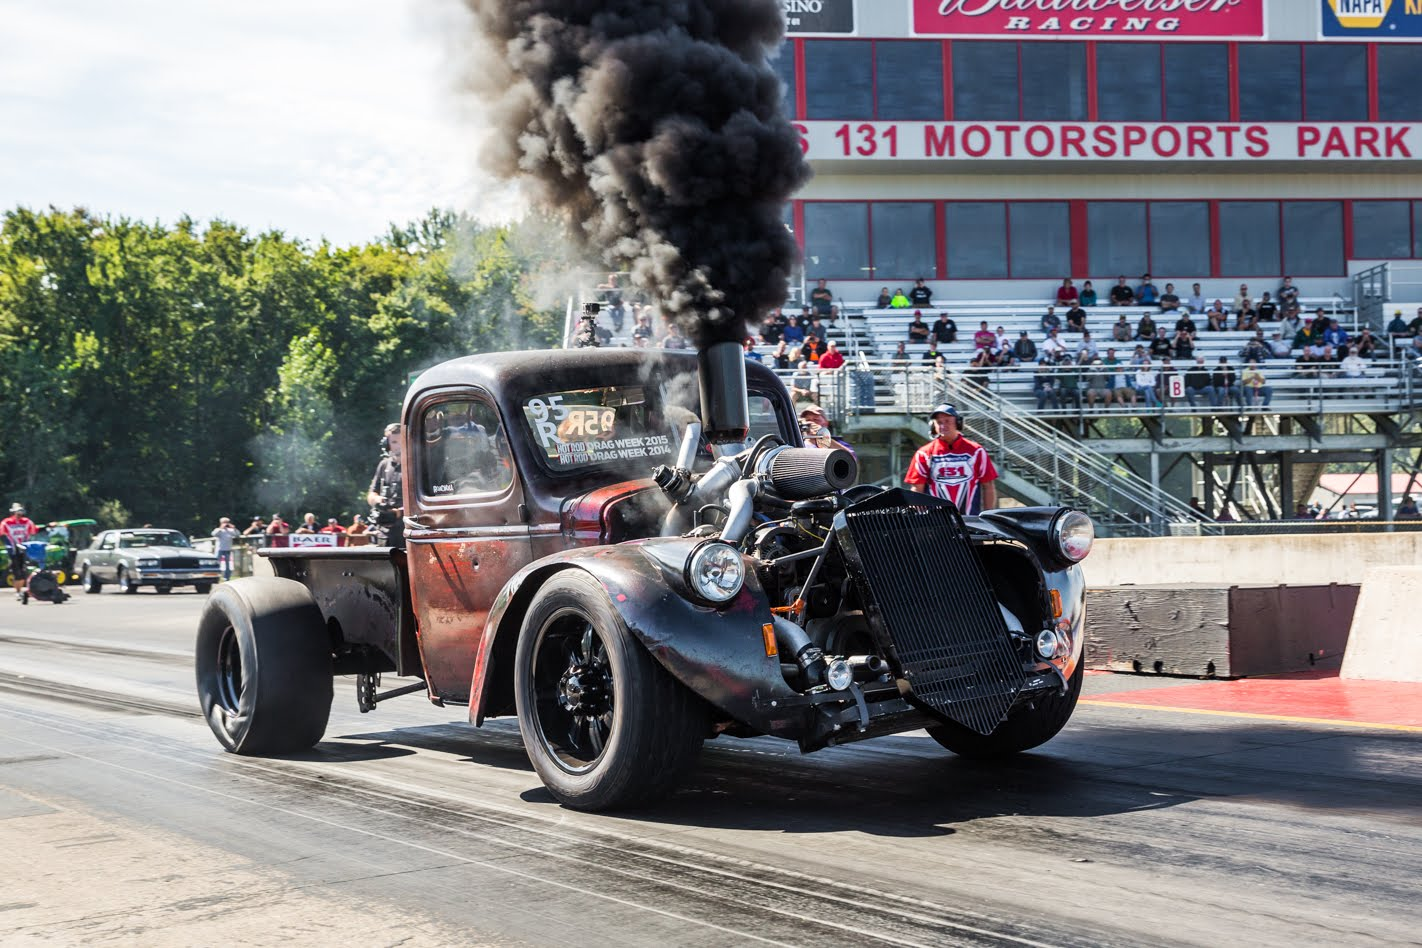 Hot Rod Drag Week In Australia Is So Epic It Even Made Mad Max Smile